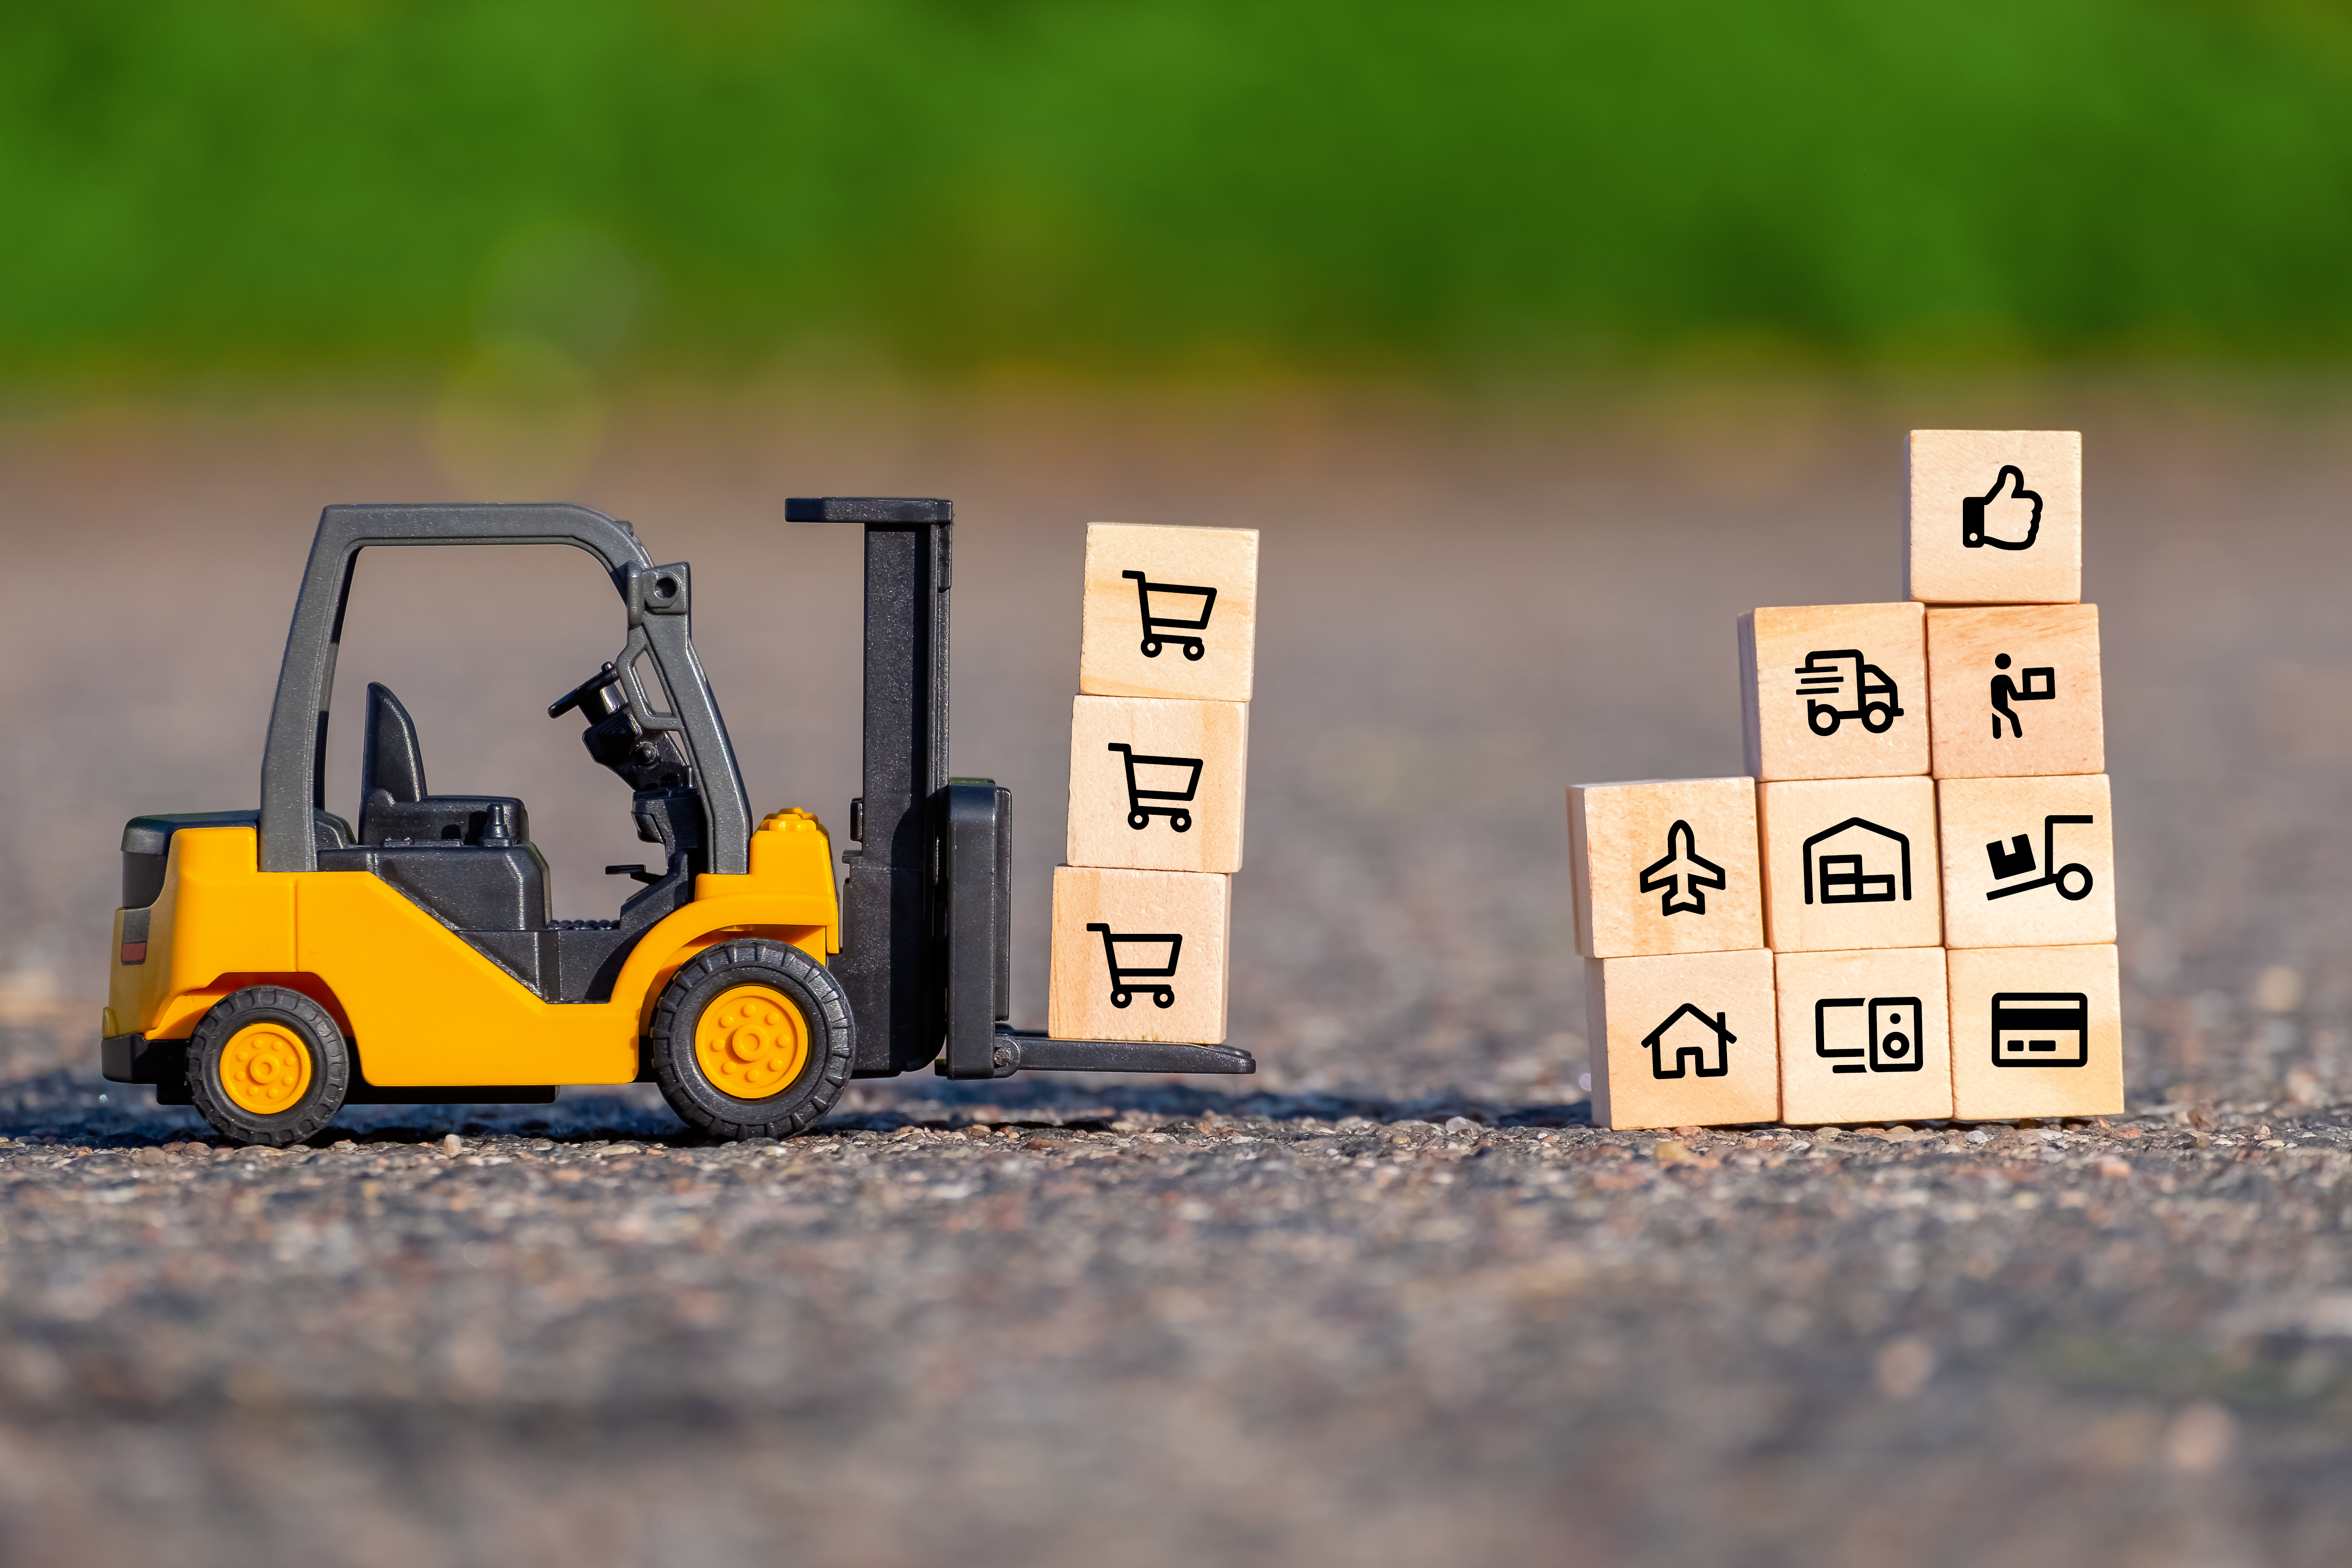 mini-forklift-truck-moves-pallet-with-wooden-block-with-icons.jpg